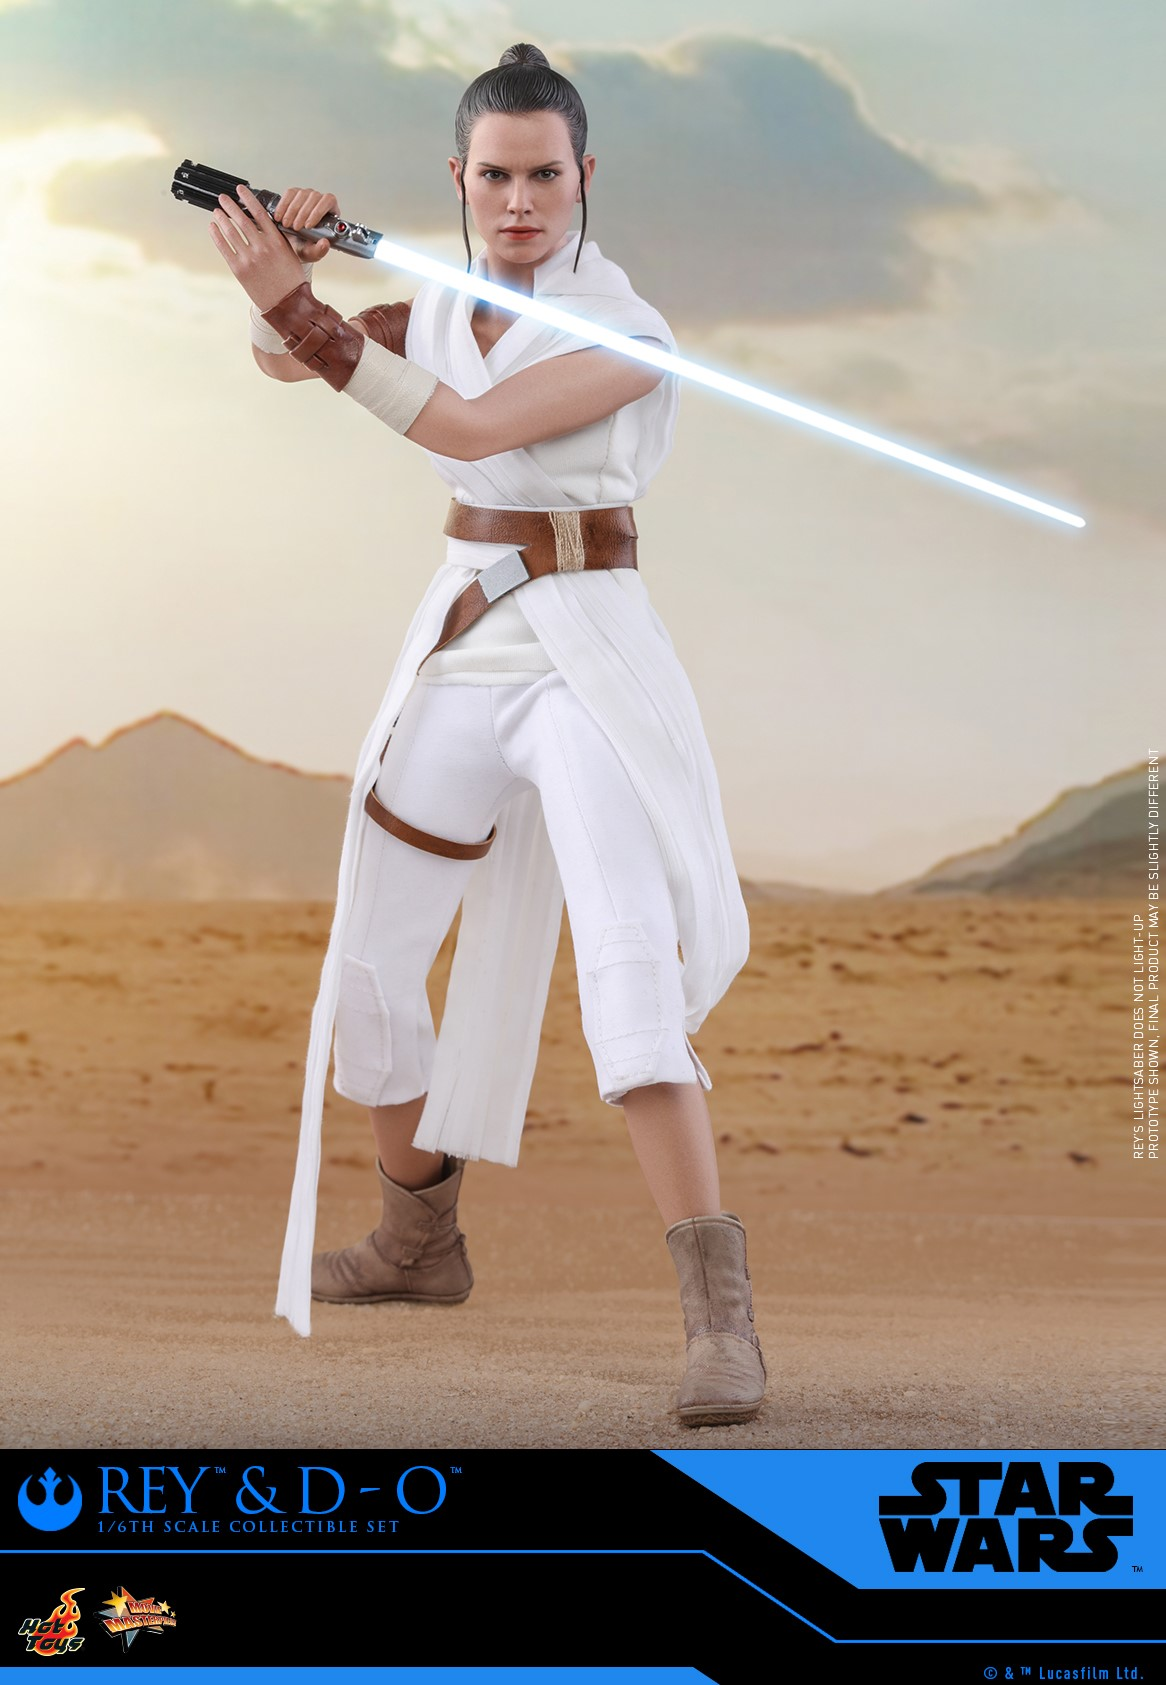 Pre-Order Hot Toys Star Wars Rey & D-O Figure Set